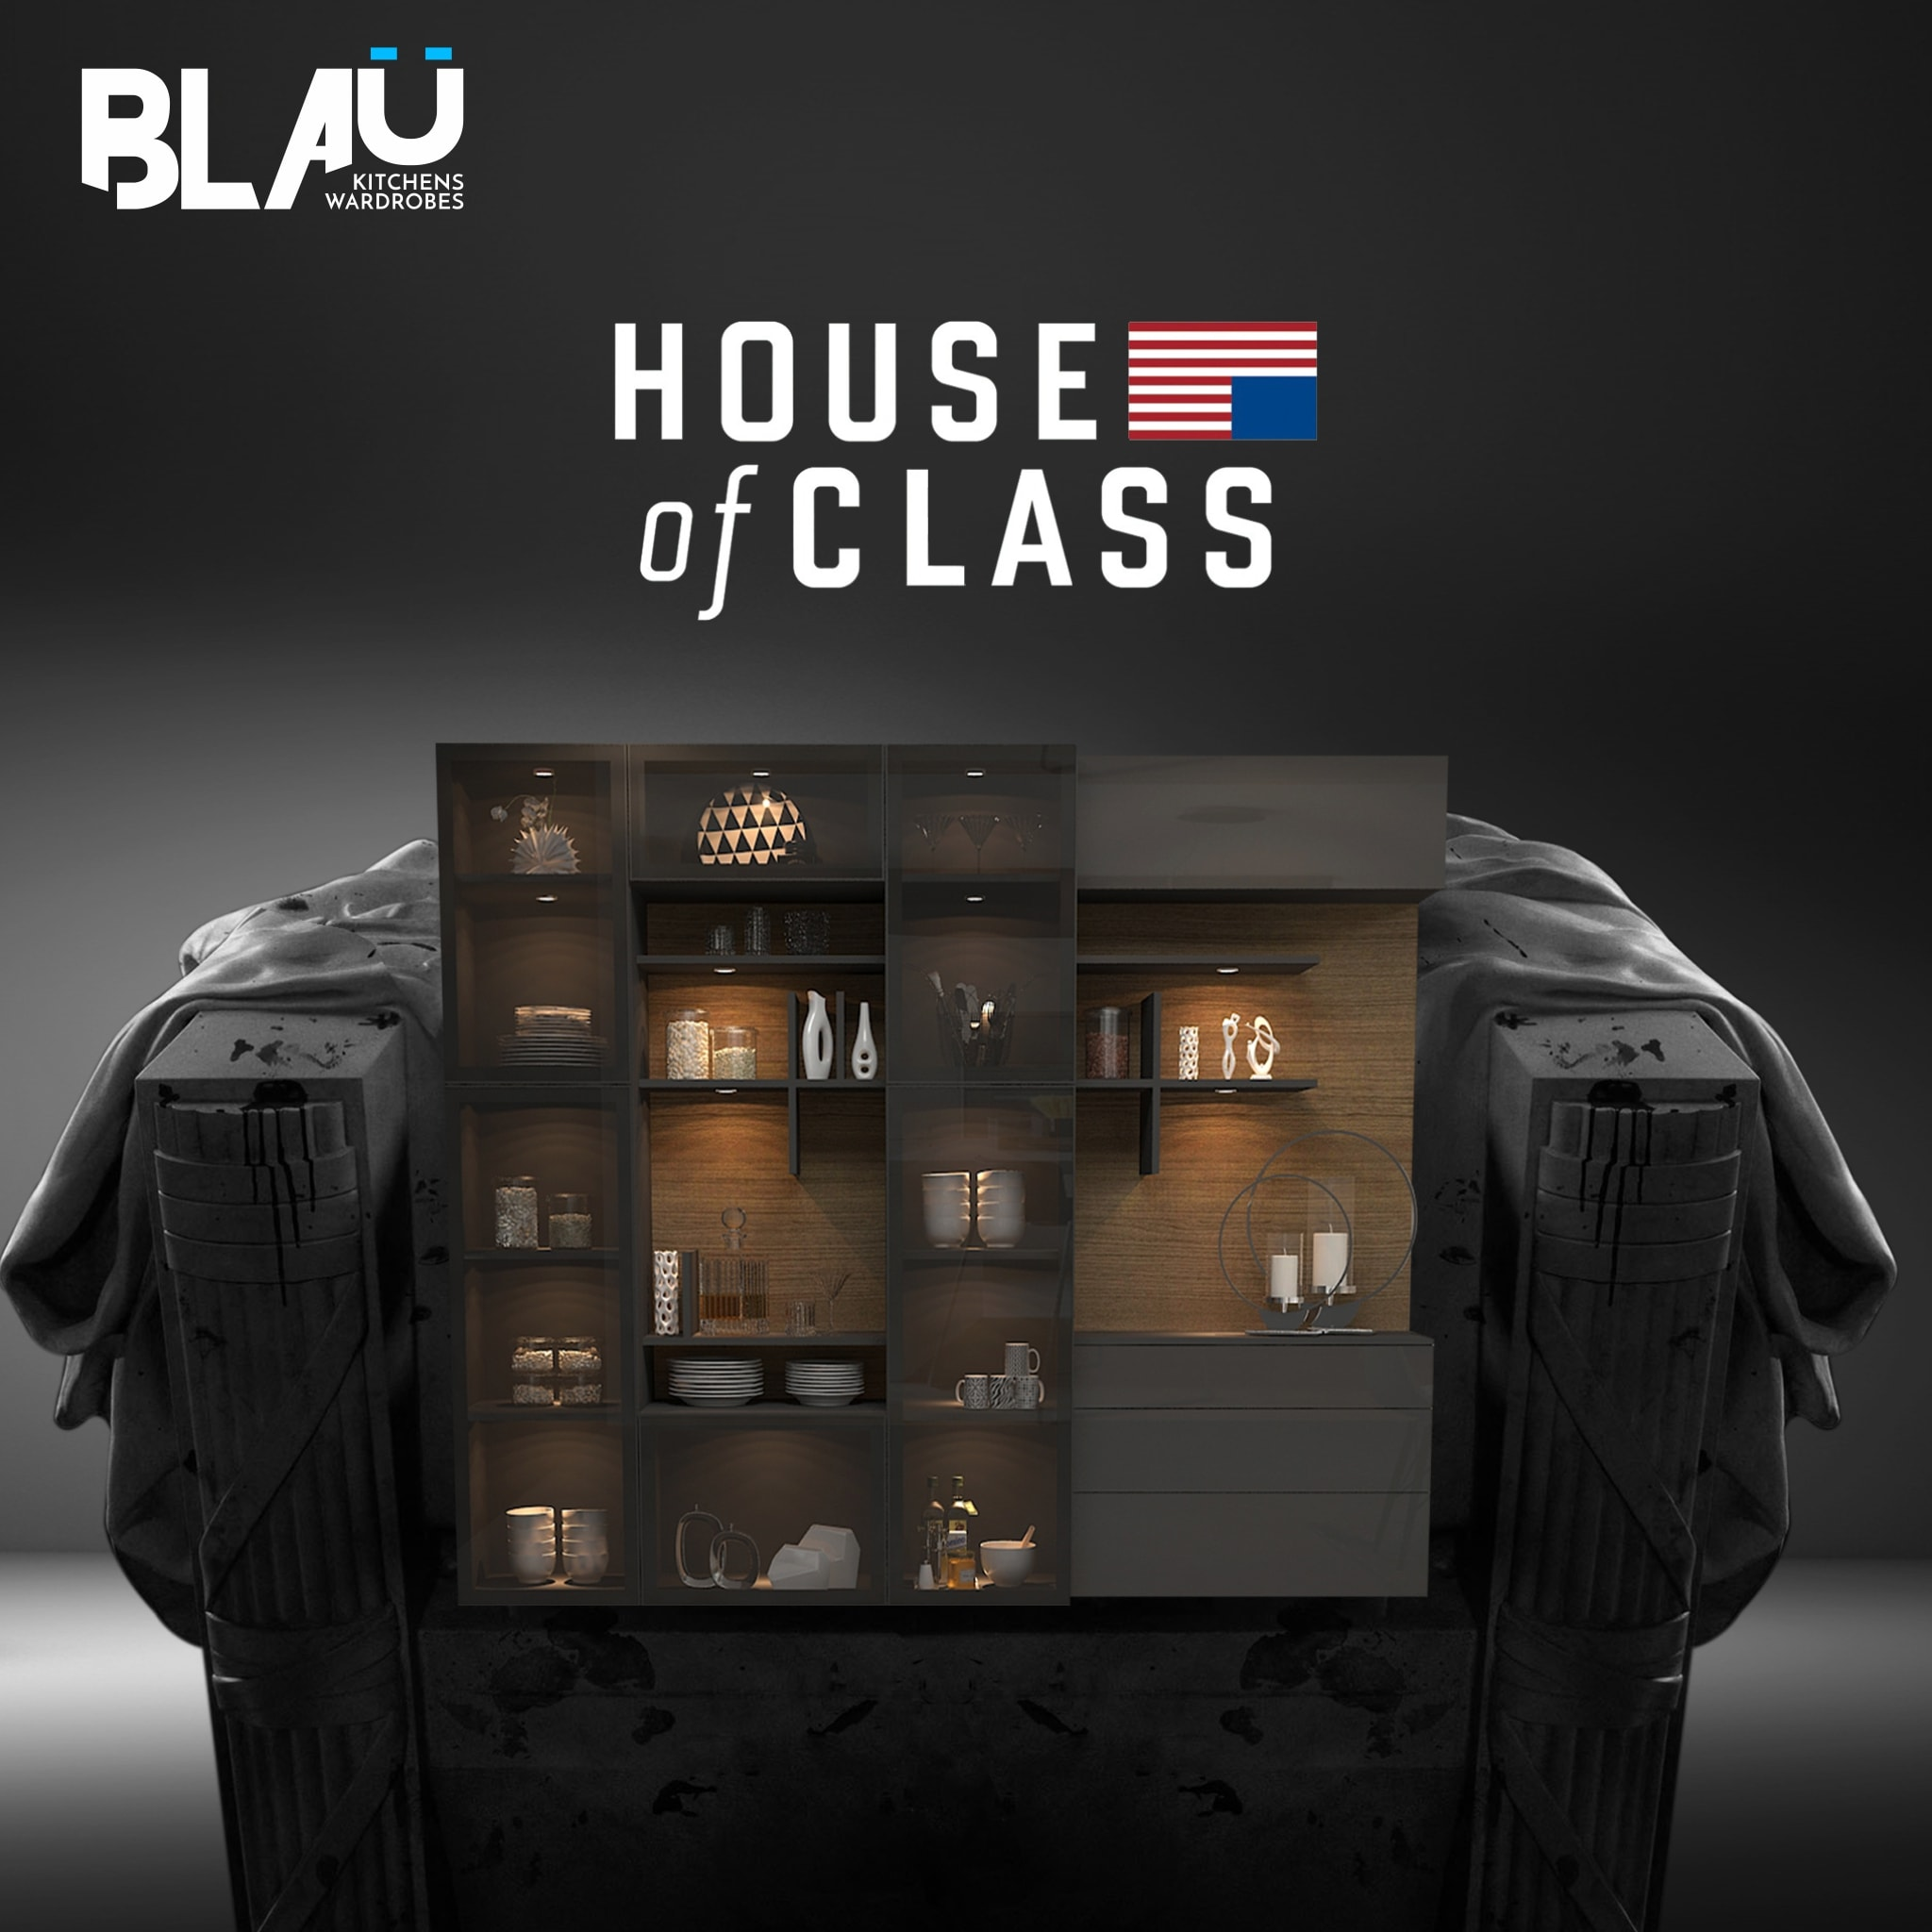 ylvbmqhphji-blau,-best-furniture-ad,-house-of-cards-theme,-what's-in-a-name-creatives